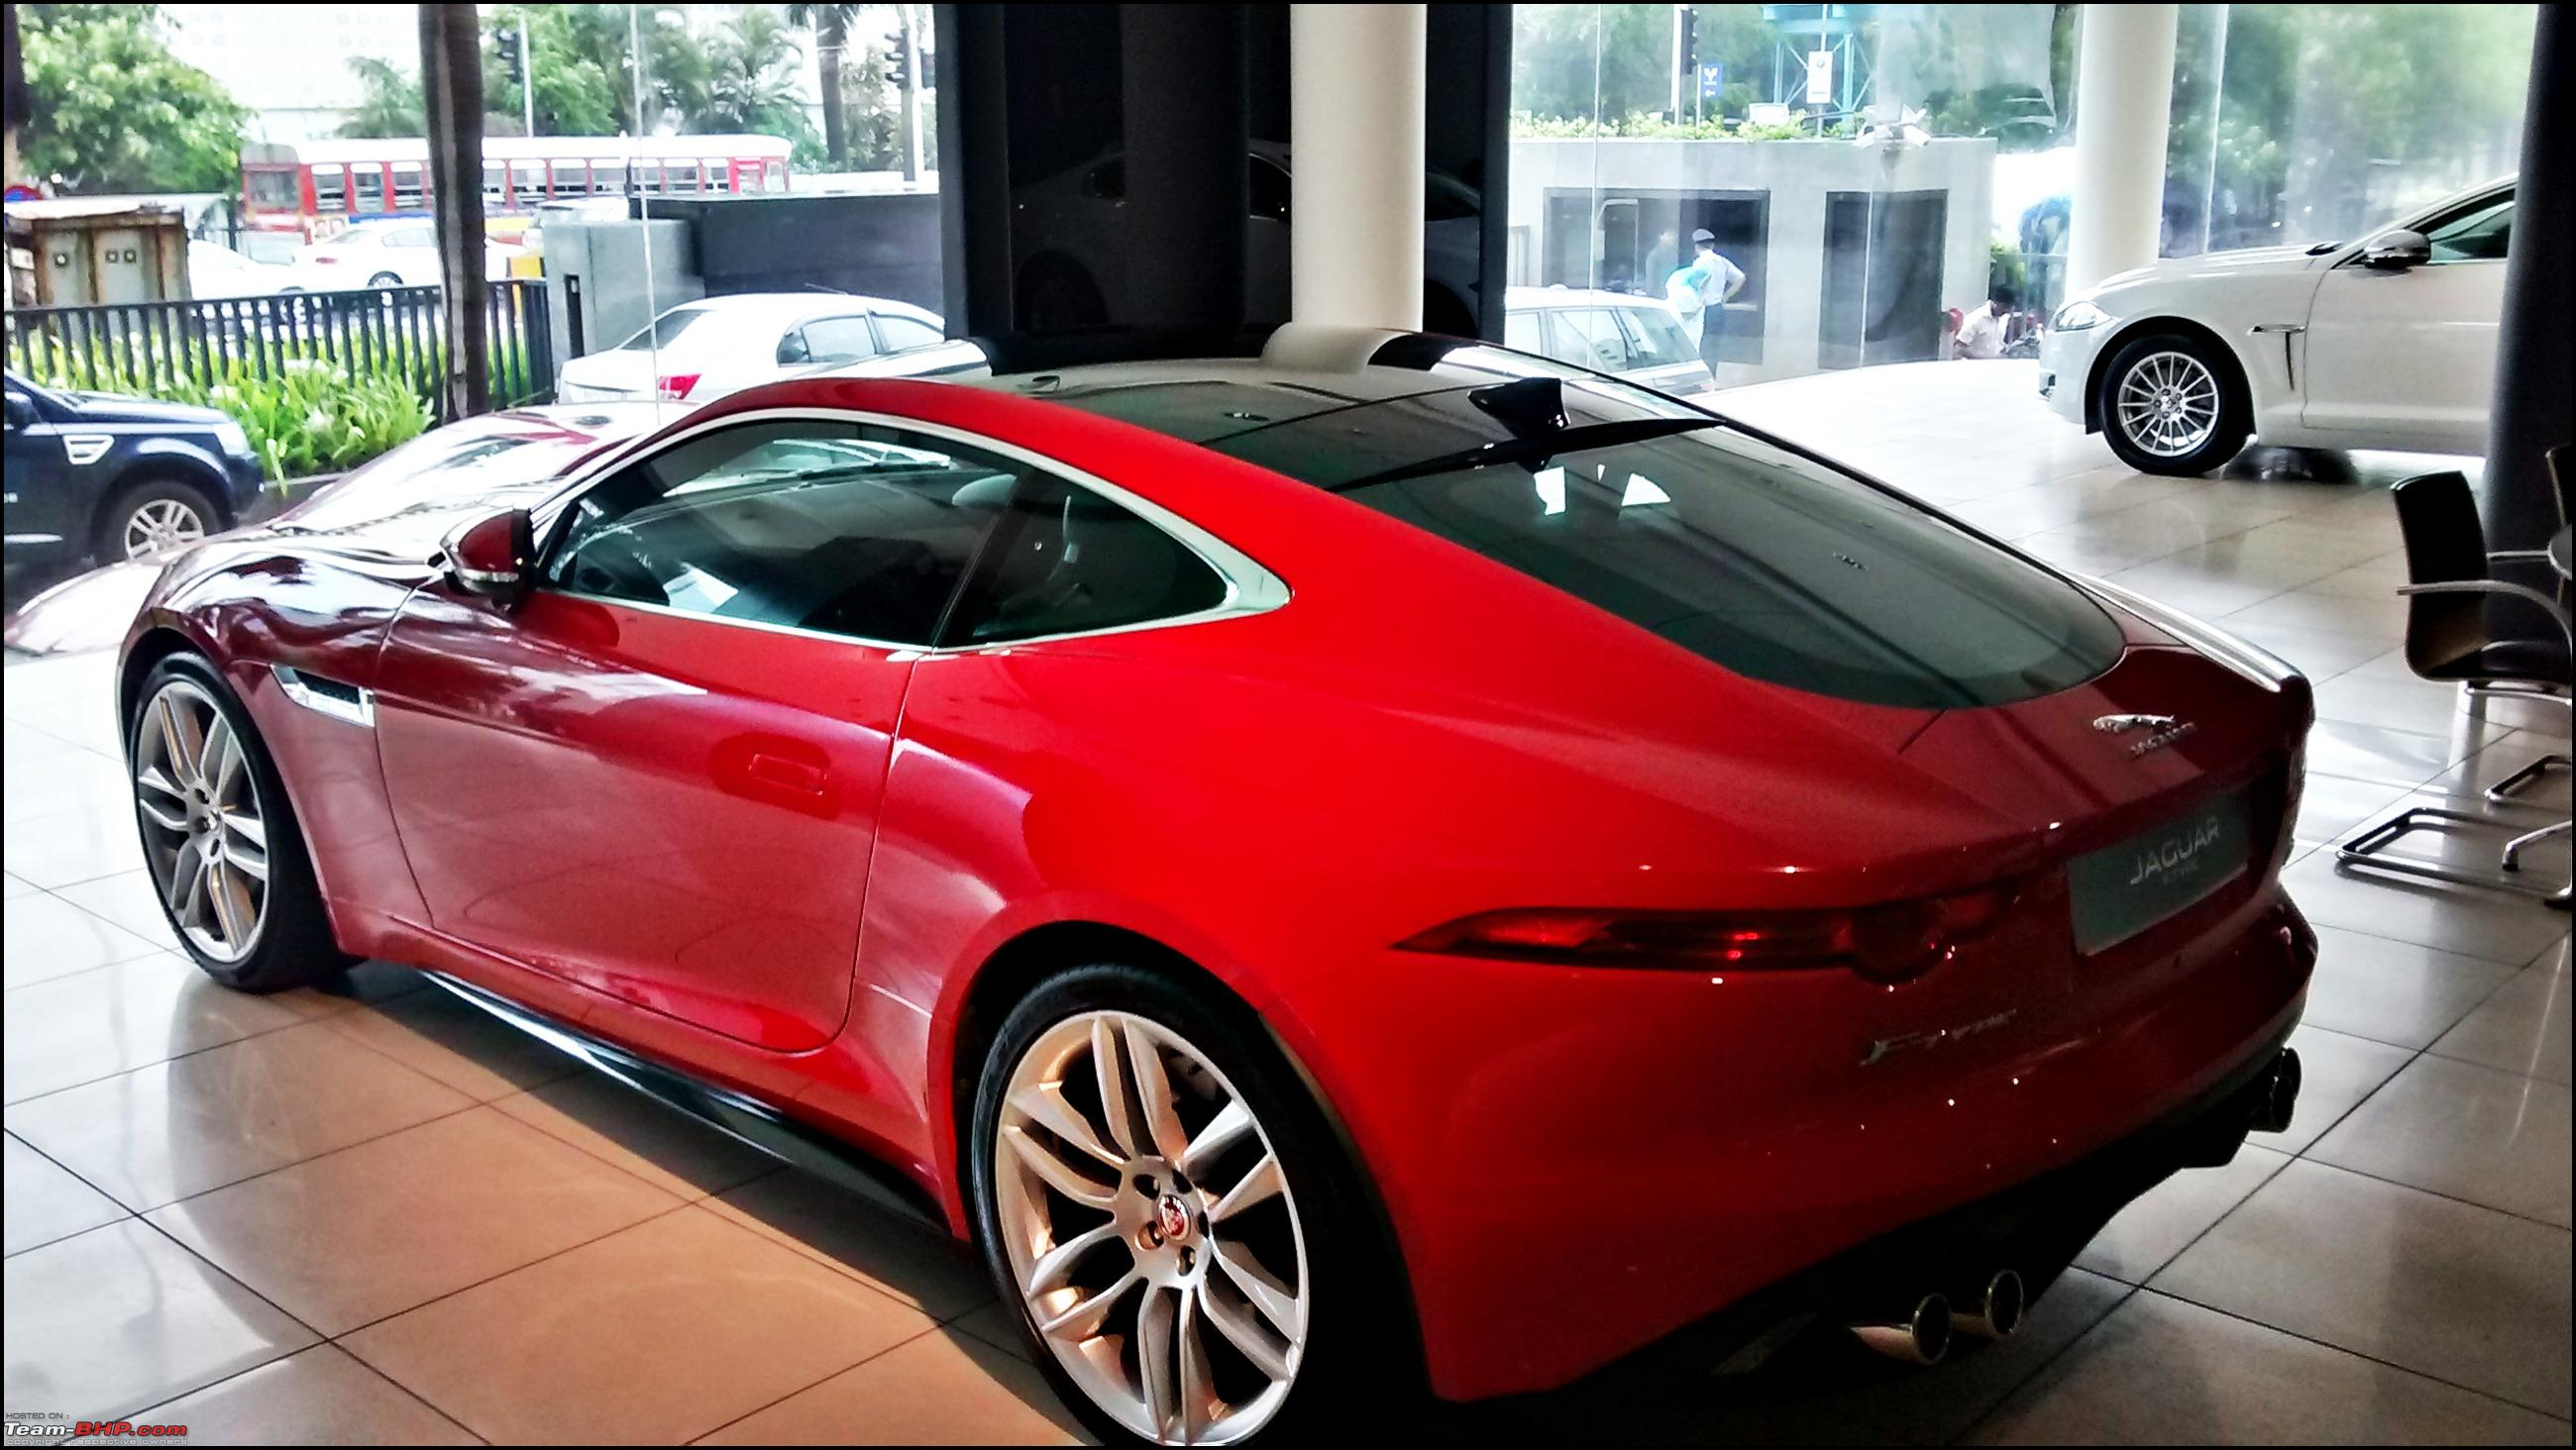 lowest price of jaguar car in india jaguar f type price in india 2019 2020 new car release date. Black Bedroom Furniture Sets. Home Design Ideas